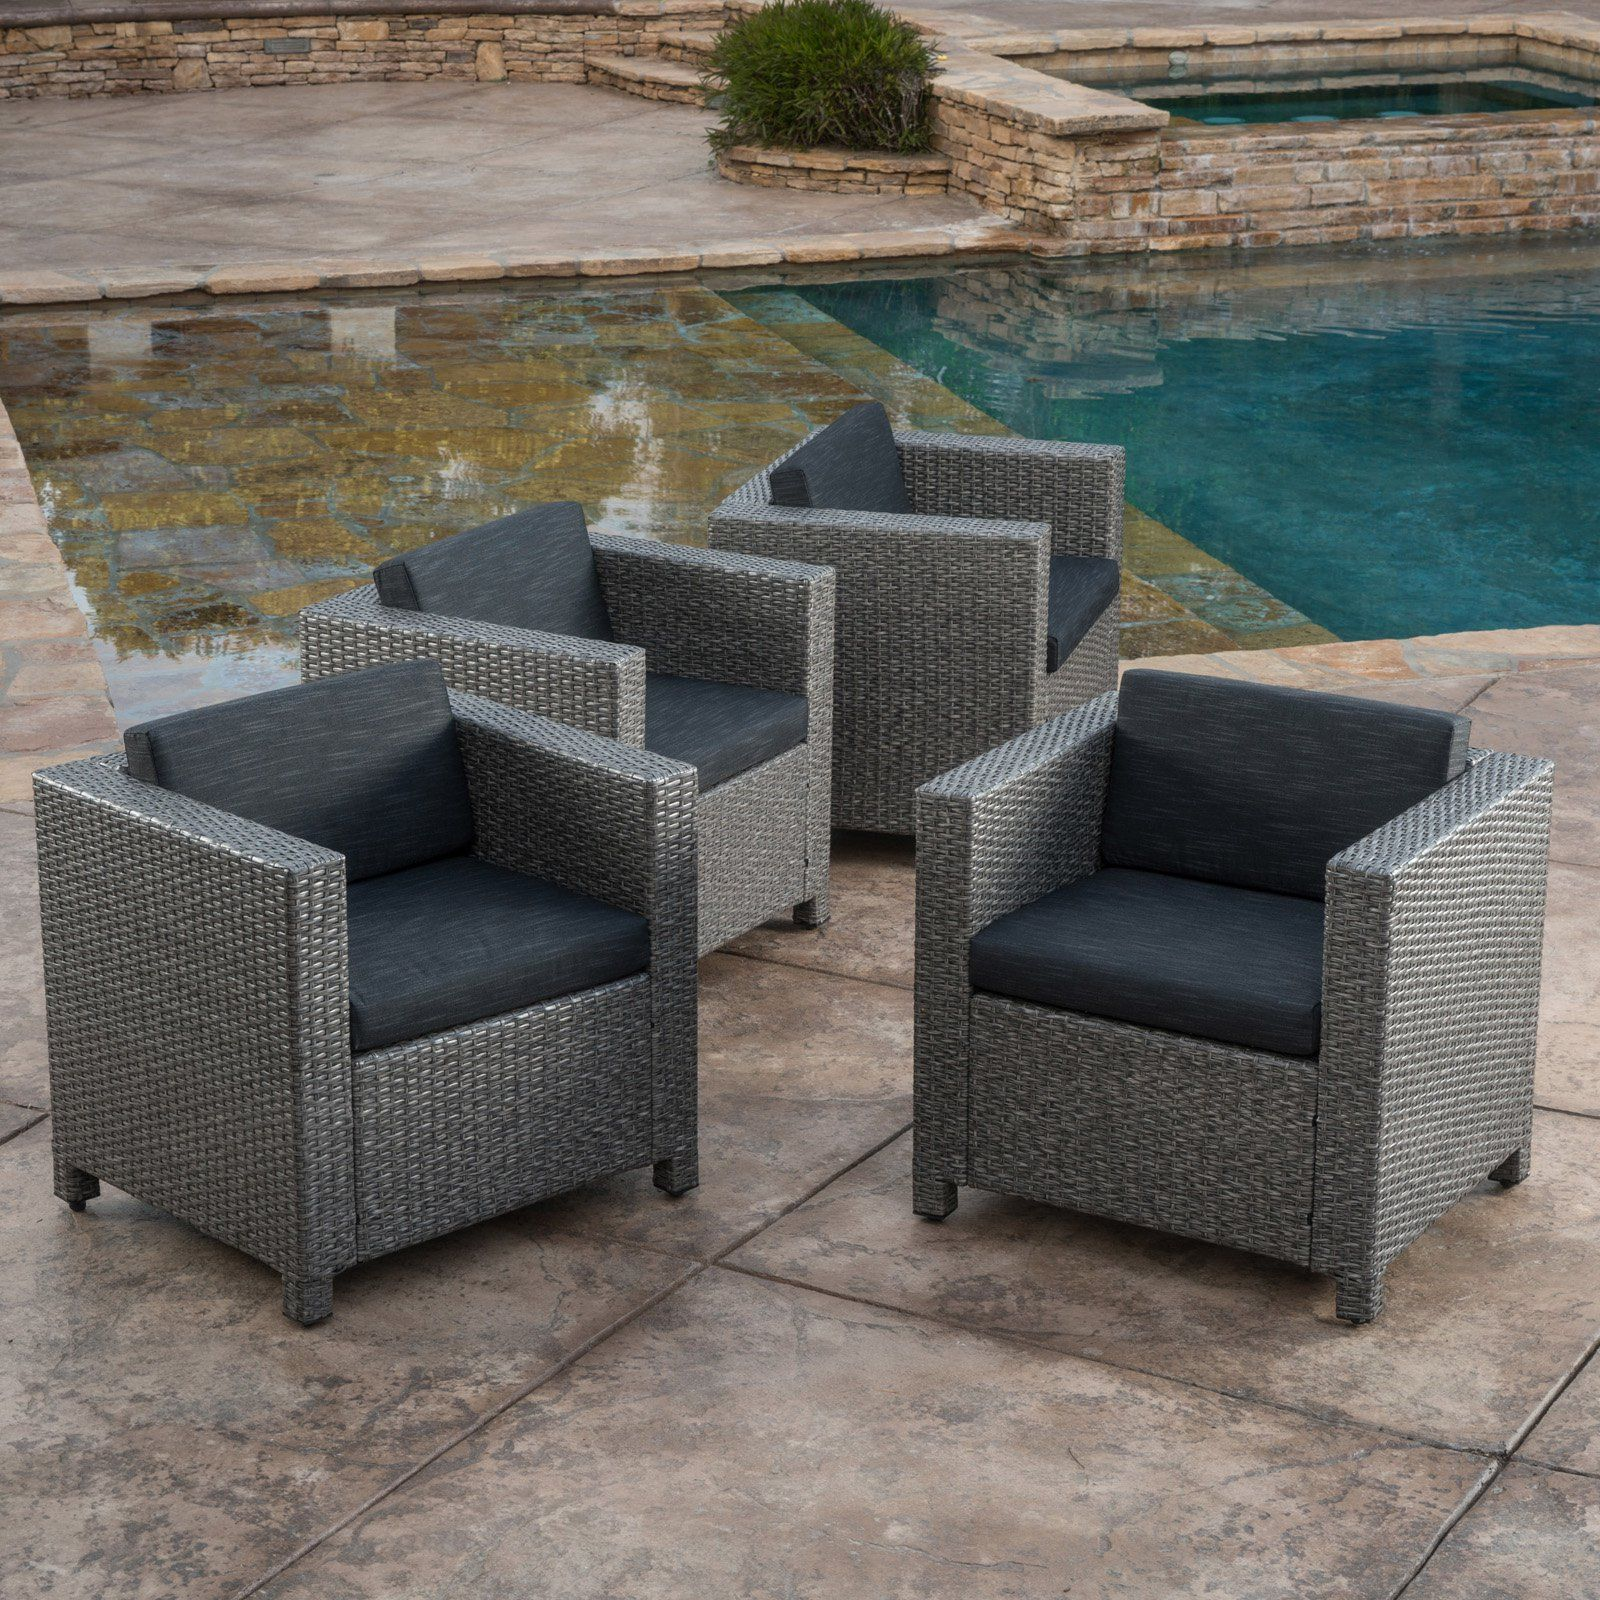 Fantastic Puerta Outdoor Club Chairs With Cushion Set Of 4 Cjindustries Chair Design For Home Cjindustriesco